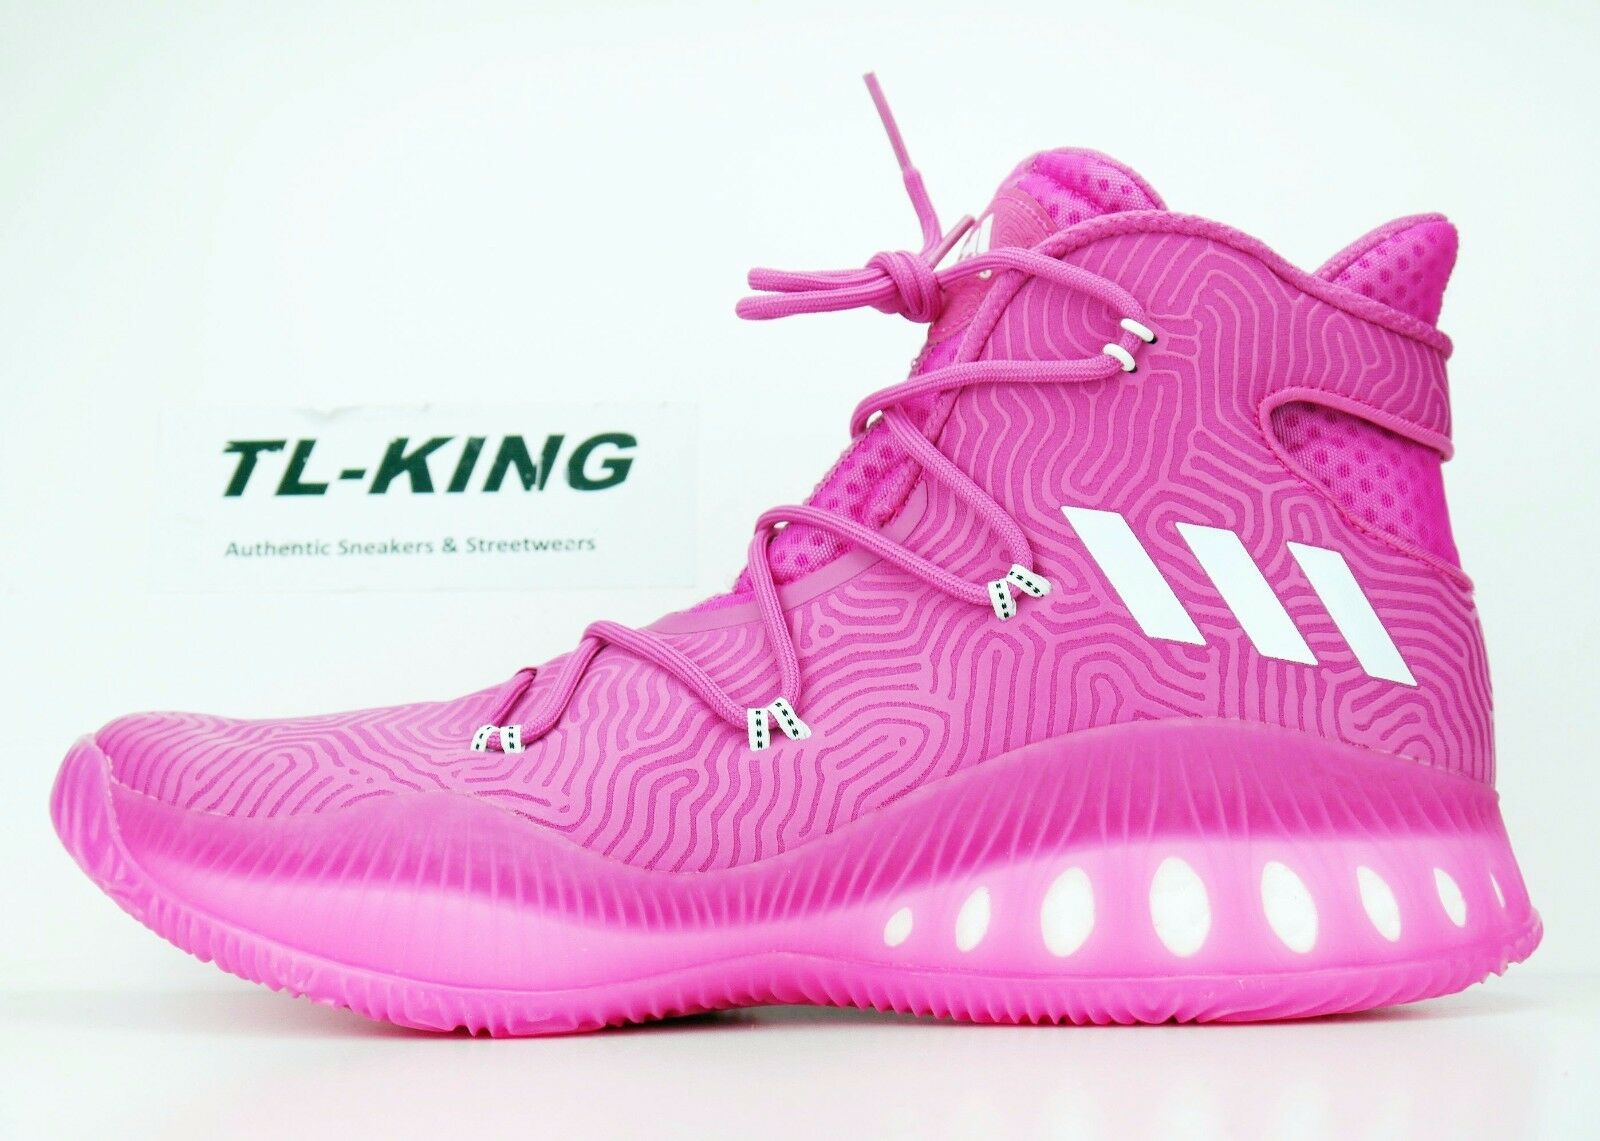 Adidas SM Crazy Explosive BCA Boost Pink NBA Player Exclusive PE BY3278 Ct